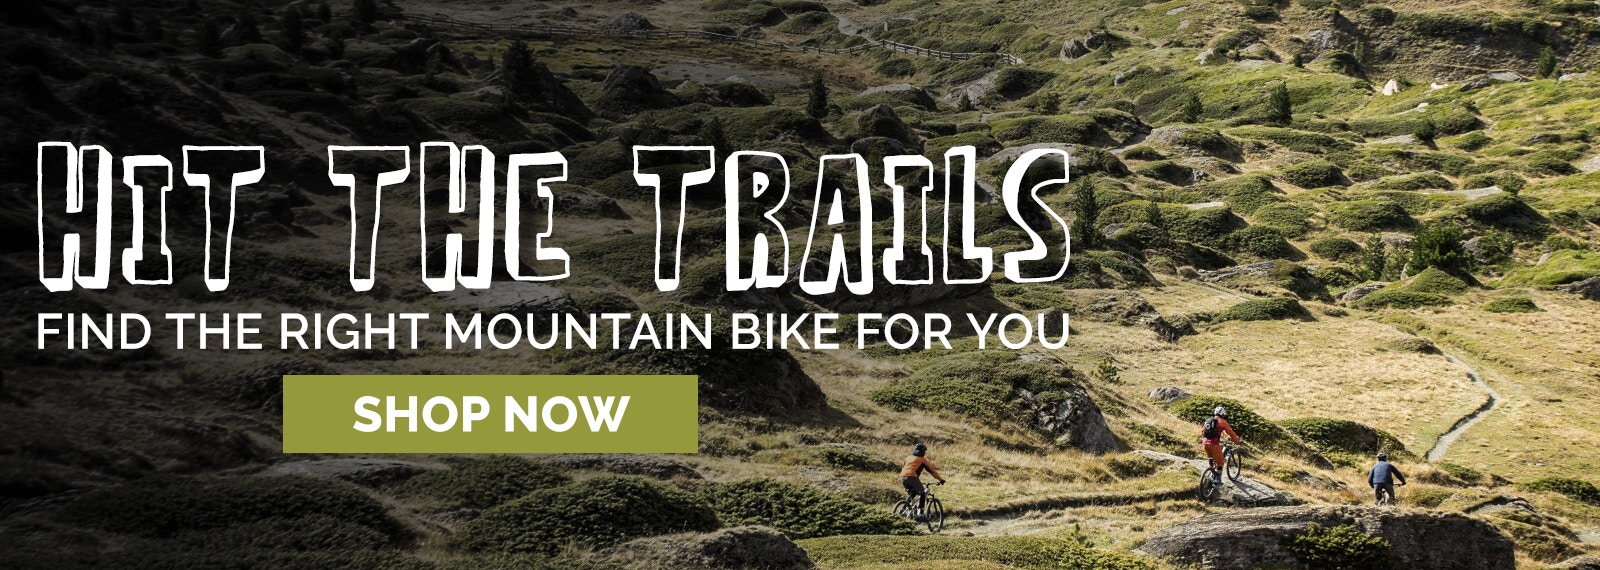 Hit the trails - go big with Mountain Bikes